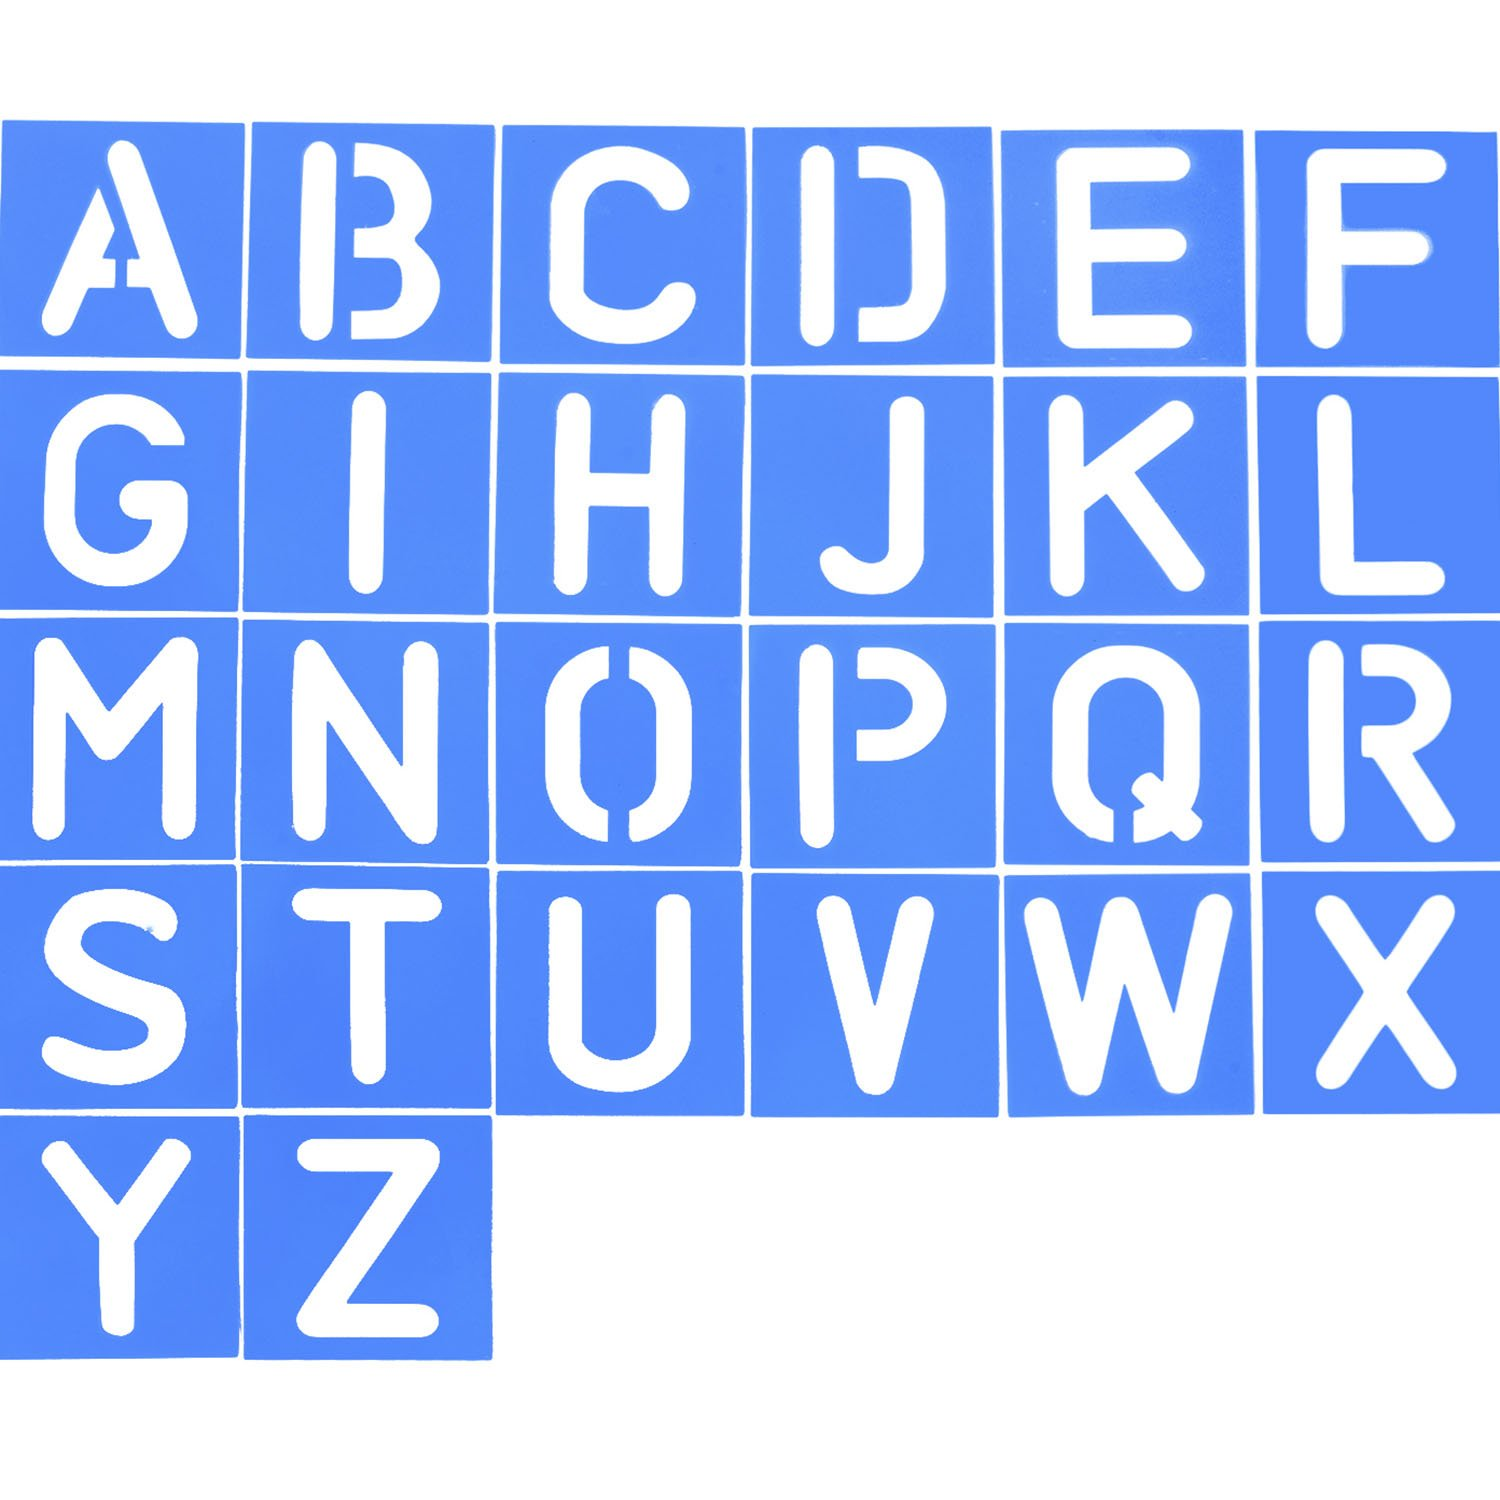 Shappy 26 Pieces Plastic Letter Stencil Alphabet Stencils Set for Painting Learning DIY, Blue by Shappy